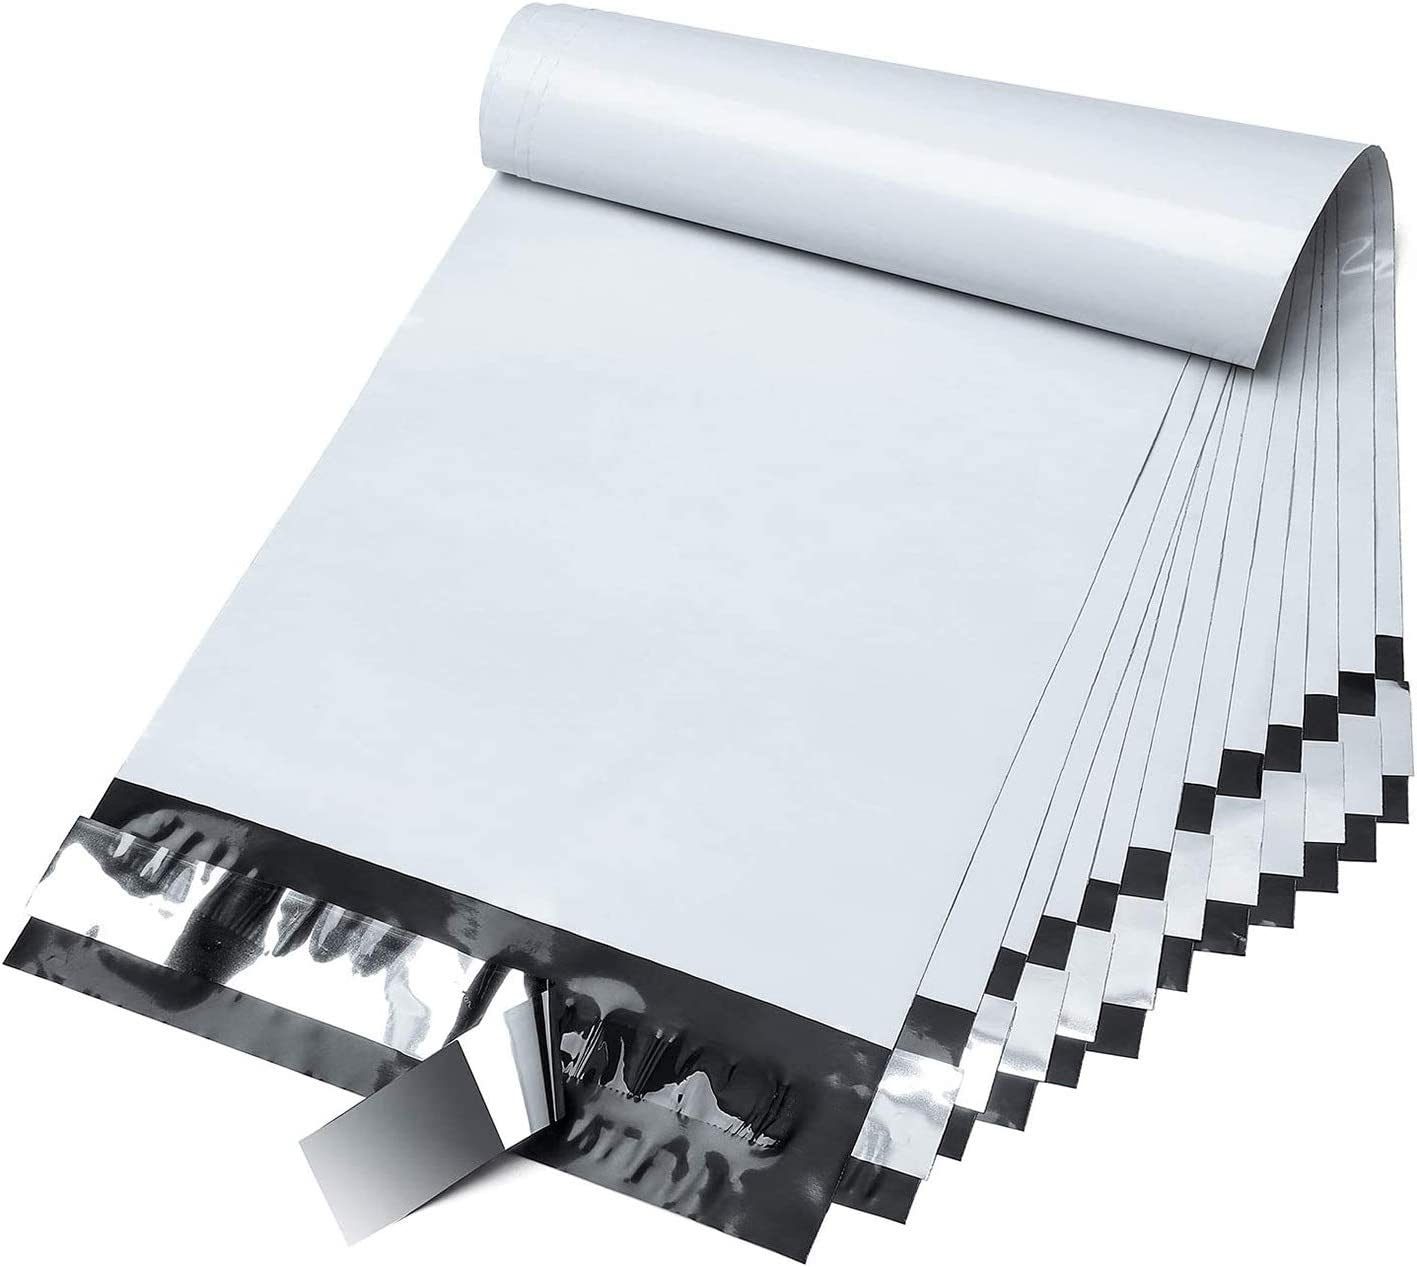 Fuxury 6x9 200pc white Poly Mailers Shipping Envelops Self Sealing Envelopes Boutique Custom Bags Enhanced Durability Multipurpose Envelopes Keep Items Safe Protected : Office Products